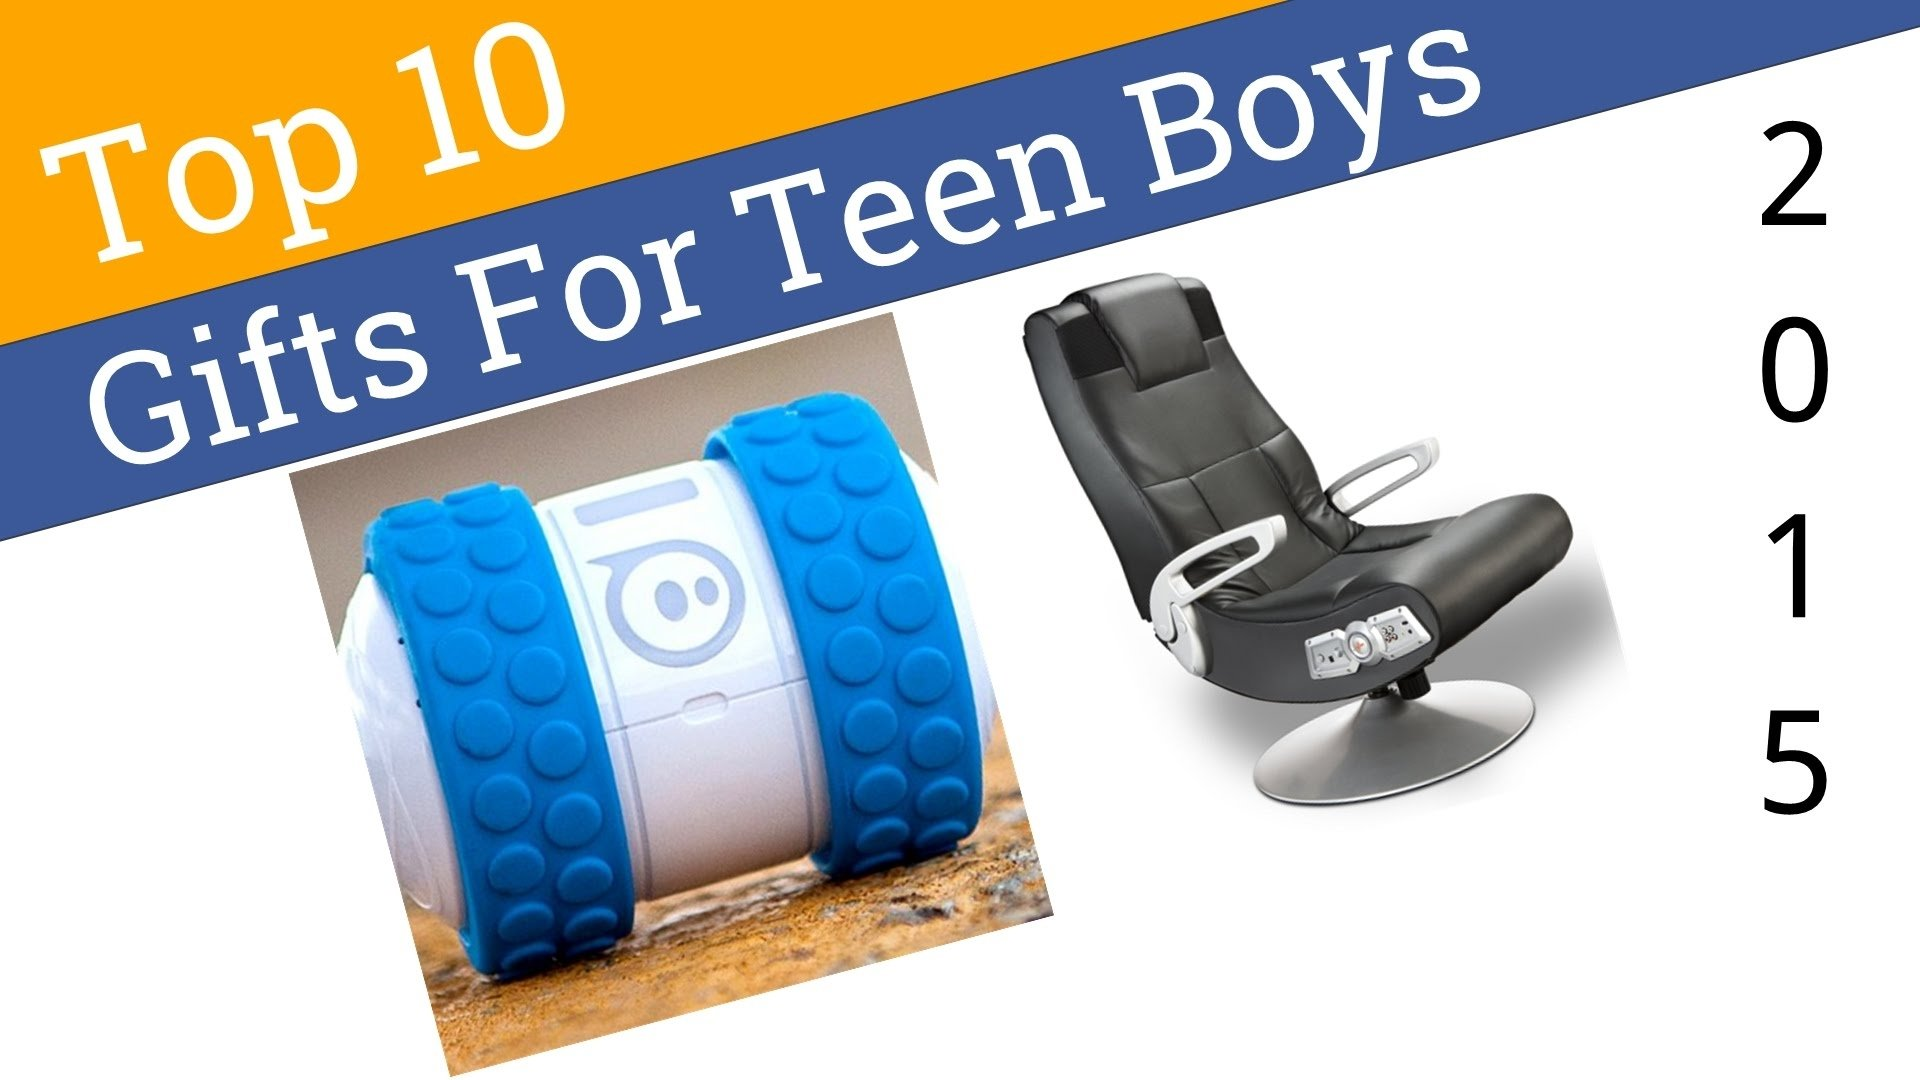 10 best gifts for teen boys 2015 - youtube